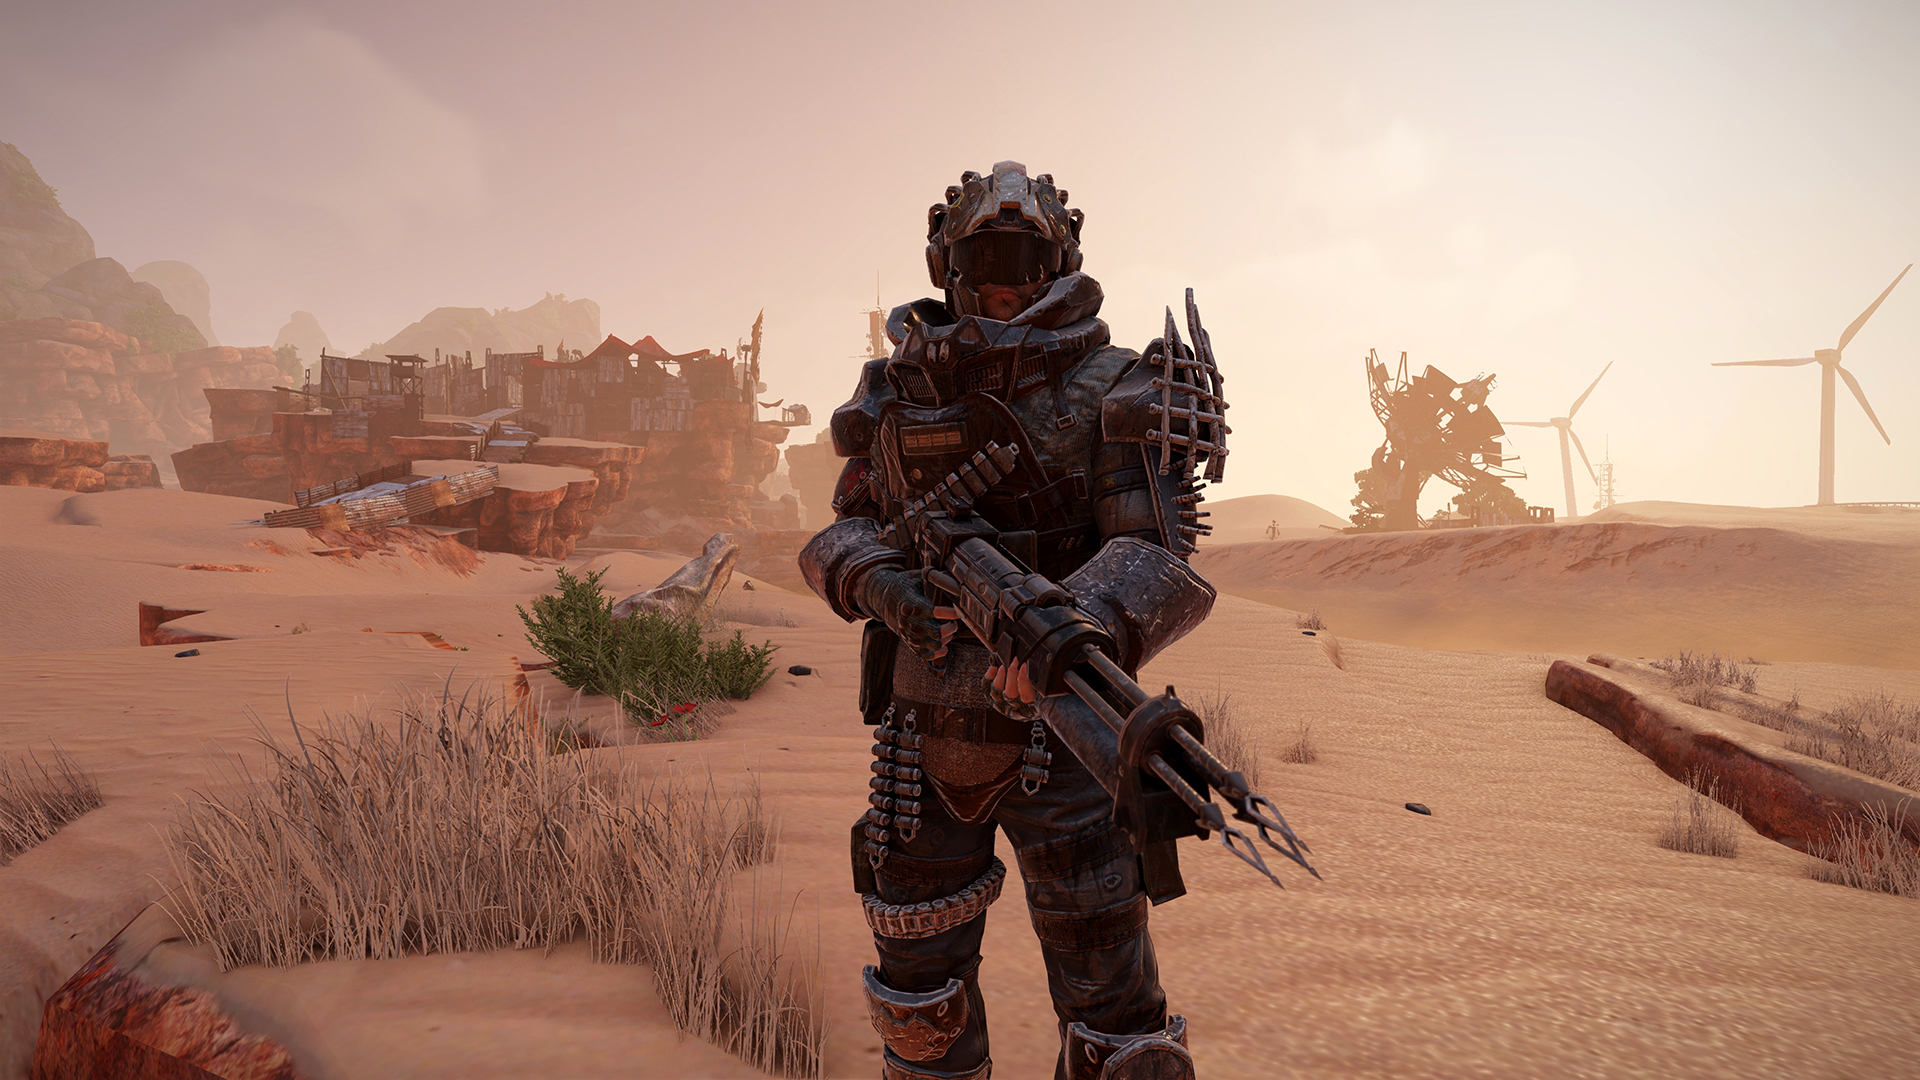 download elex cracked by reloaded open world rpg shooter games include all dlc and latest update mirrorace multiup